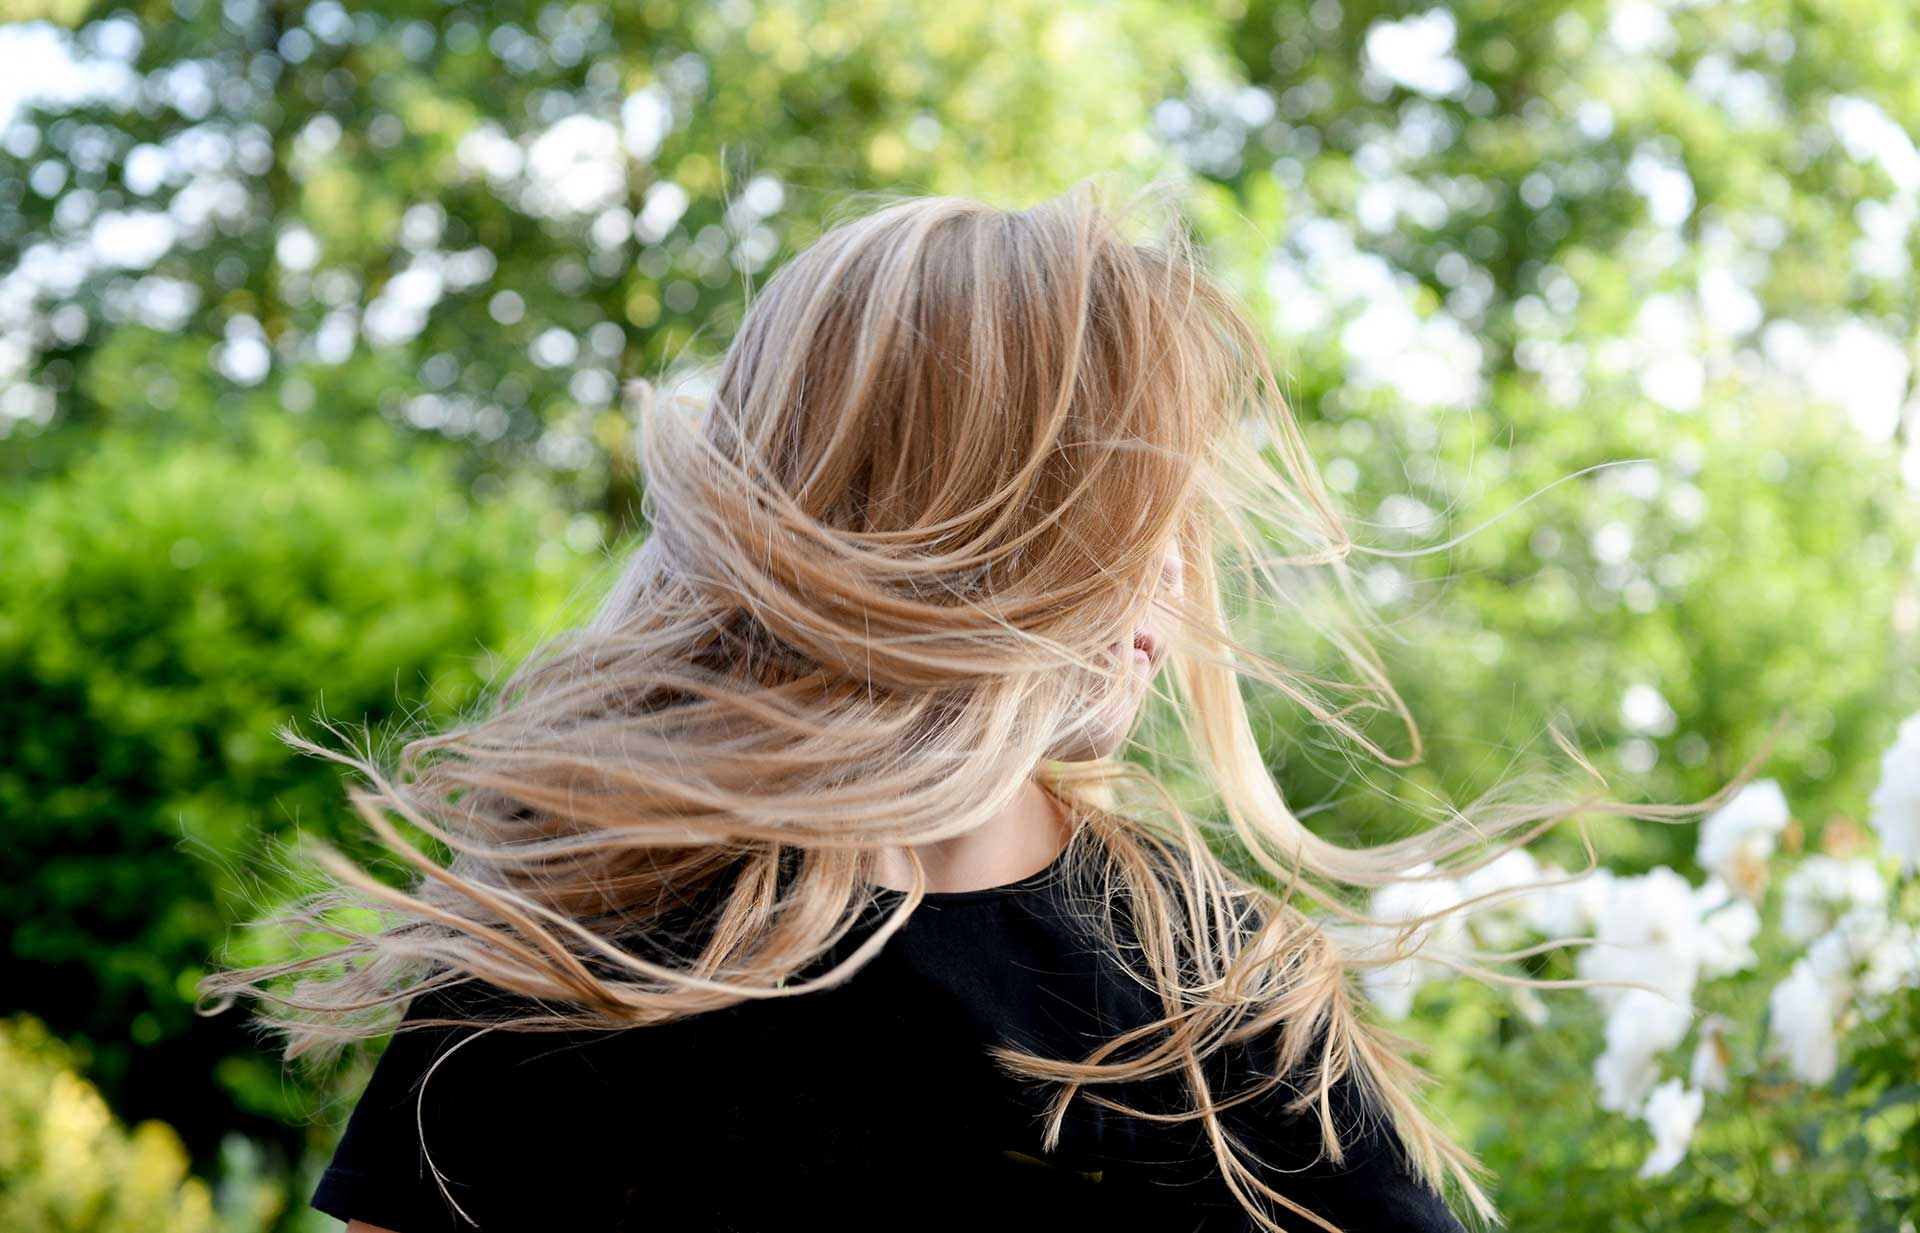 blonde hair blowing around the face of a girl who is outside